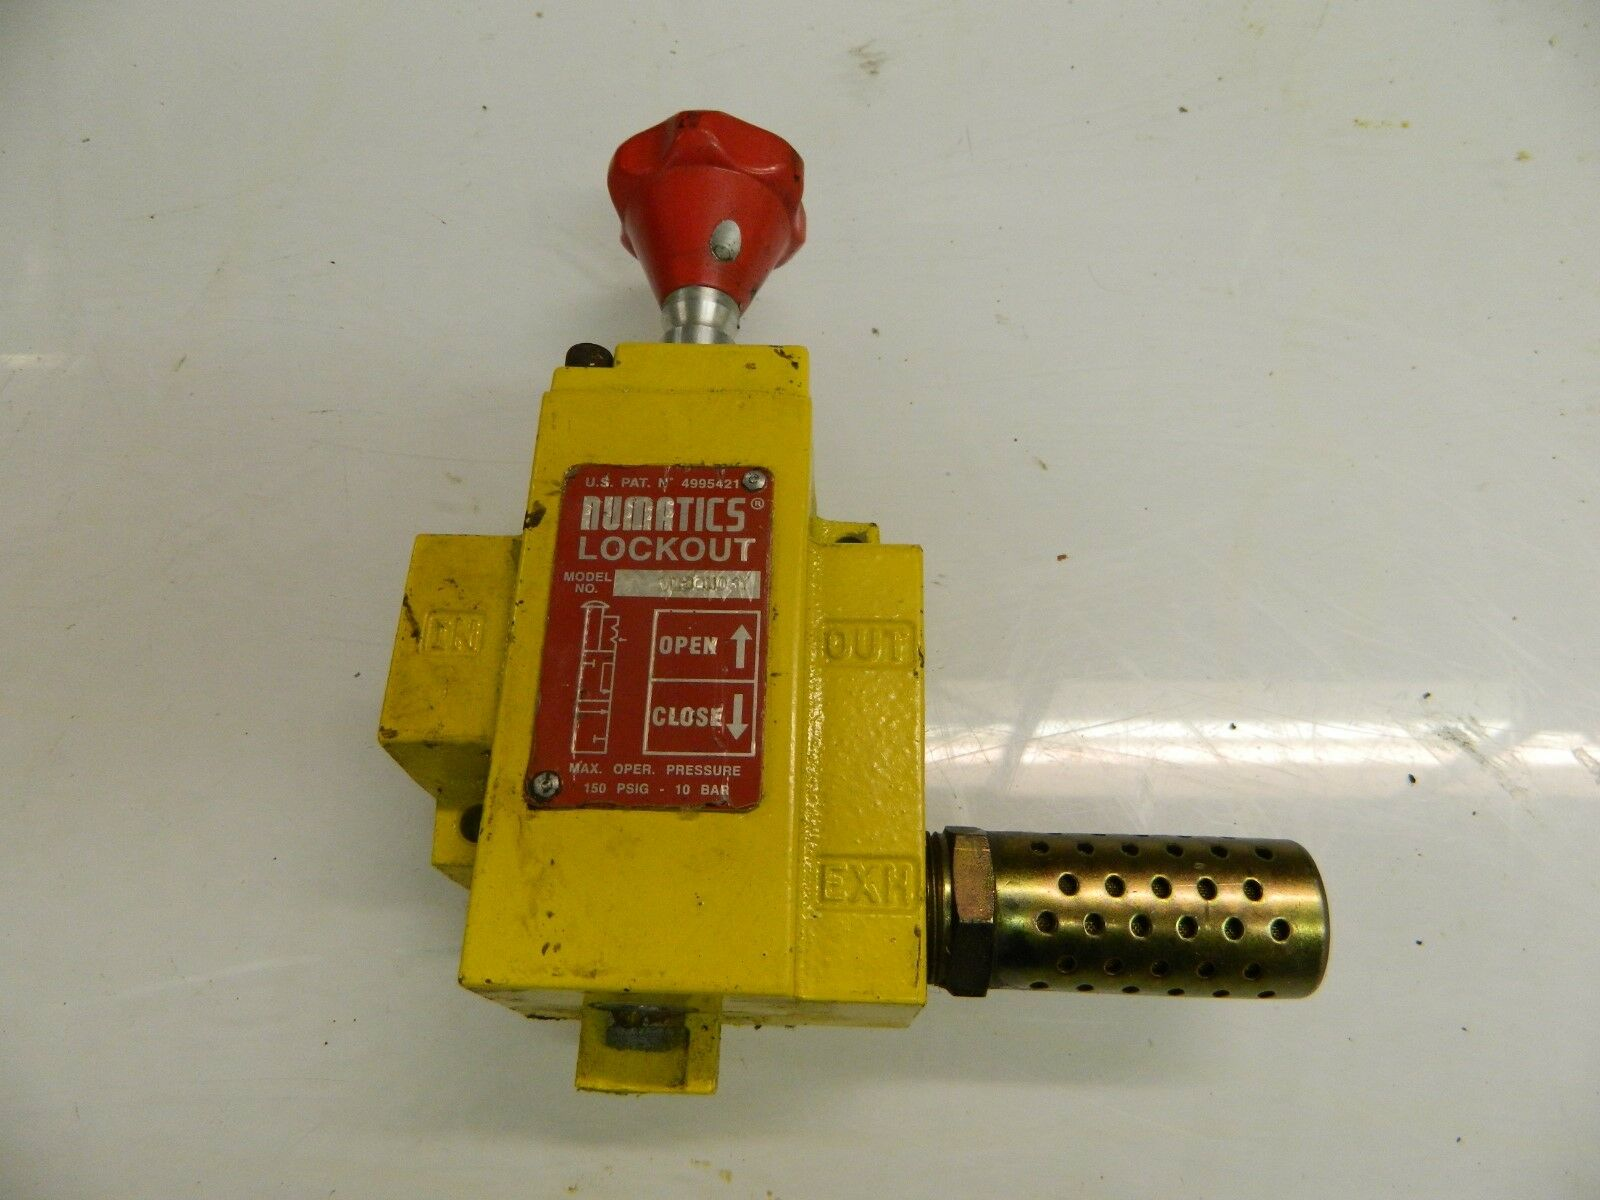 Numatics VL30N06Y Lockout Valve Air Pneumatic 3/4